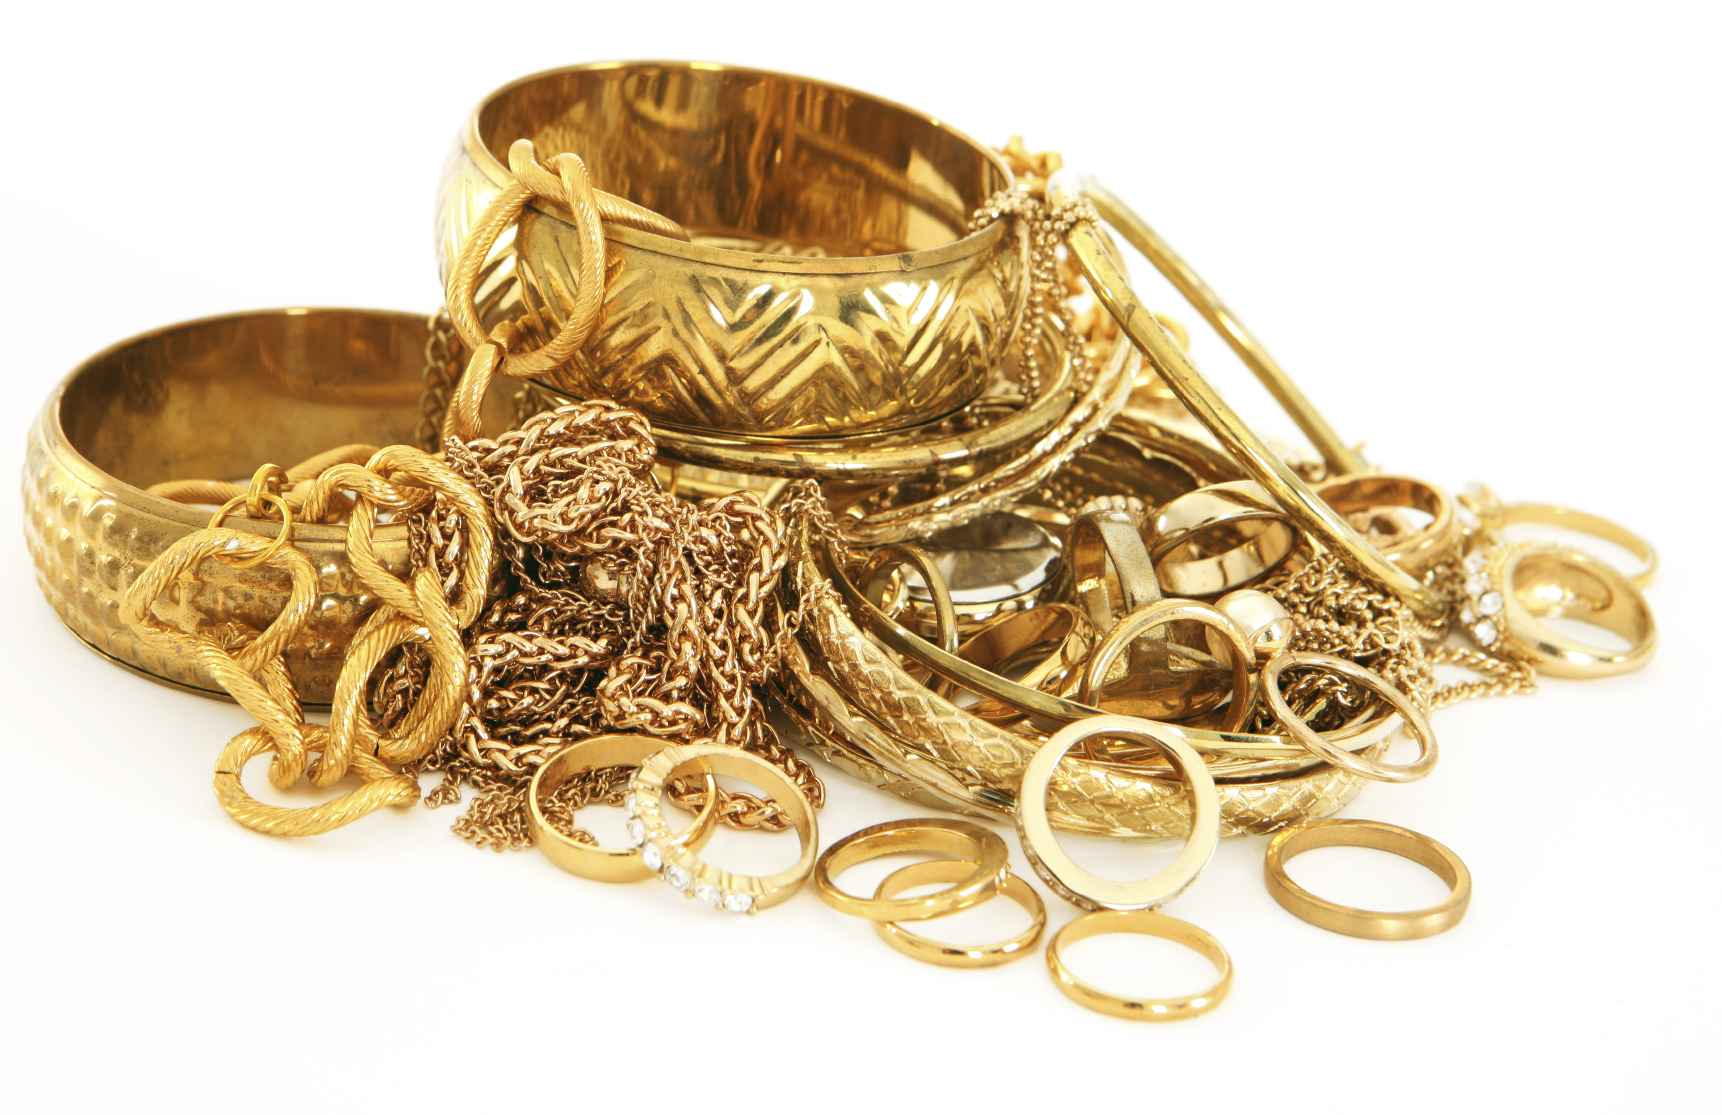 Gold-Filled vs. Gold-Plated: What's the Difference ...